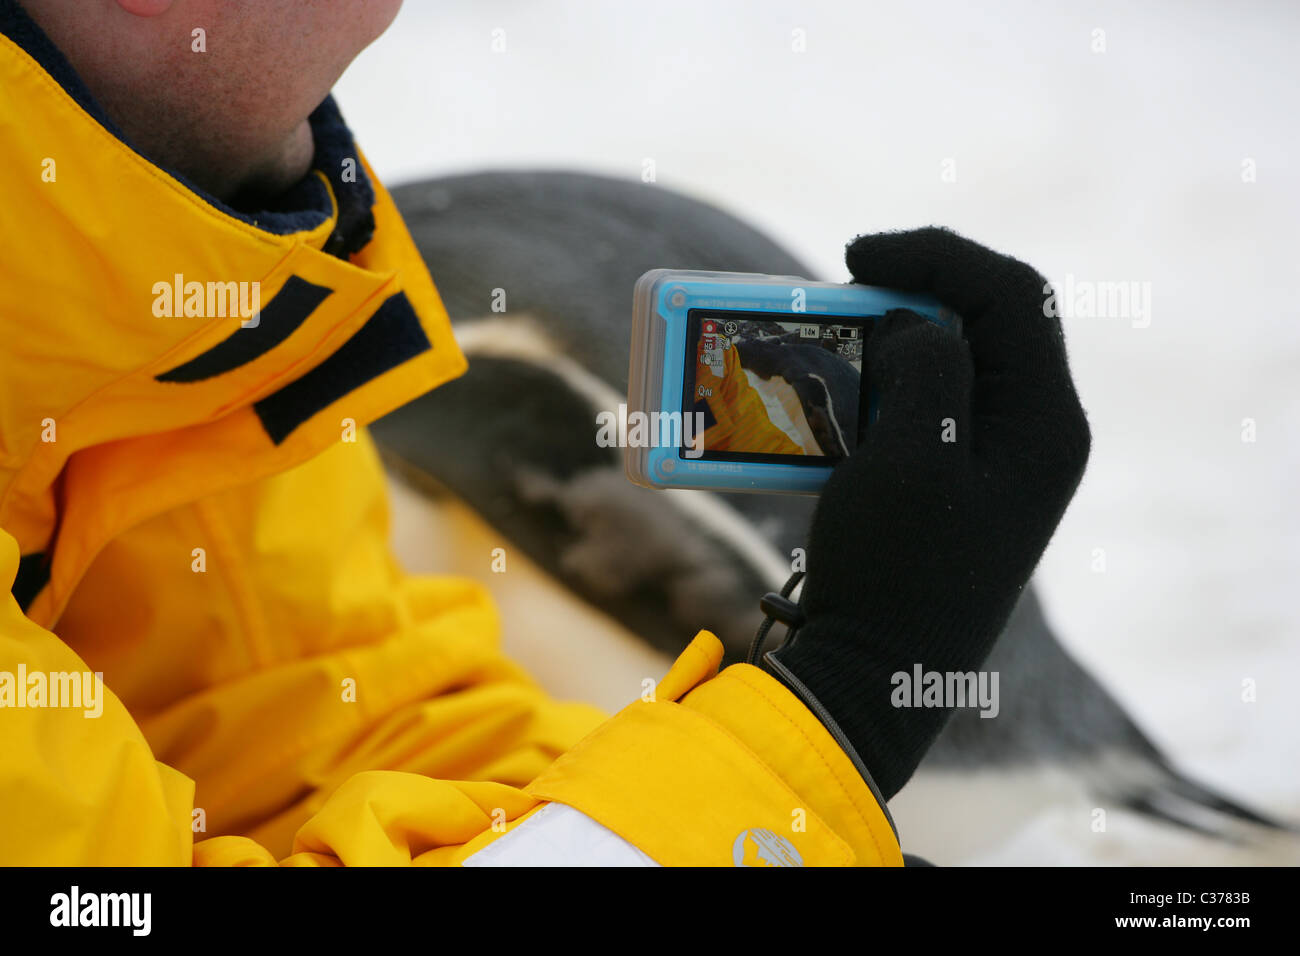 Ecotourist taking photograph of Gentoo penguin with image visible on viewing screen of digital compact camera - Stock Image